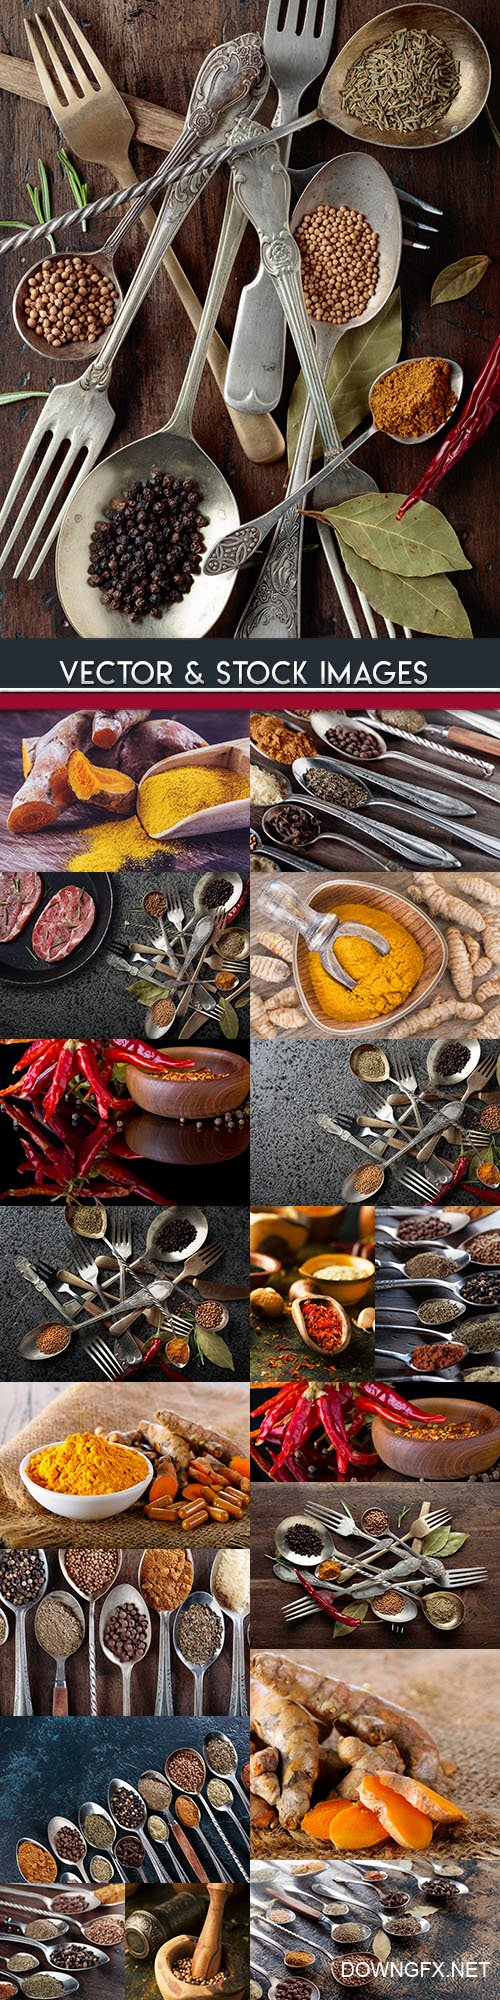 Fragrant spices and seasonings for sharp dishes